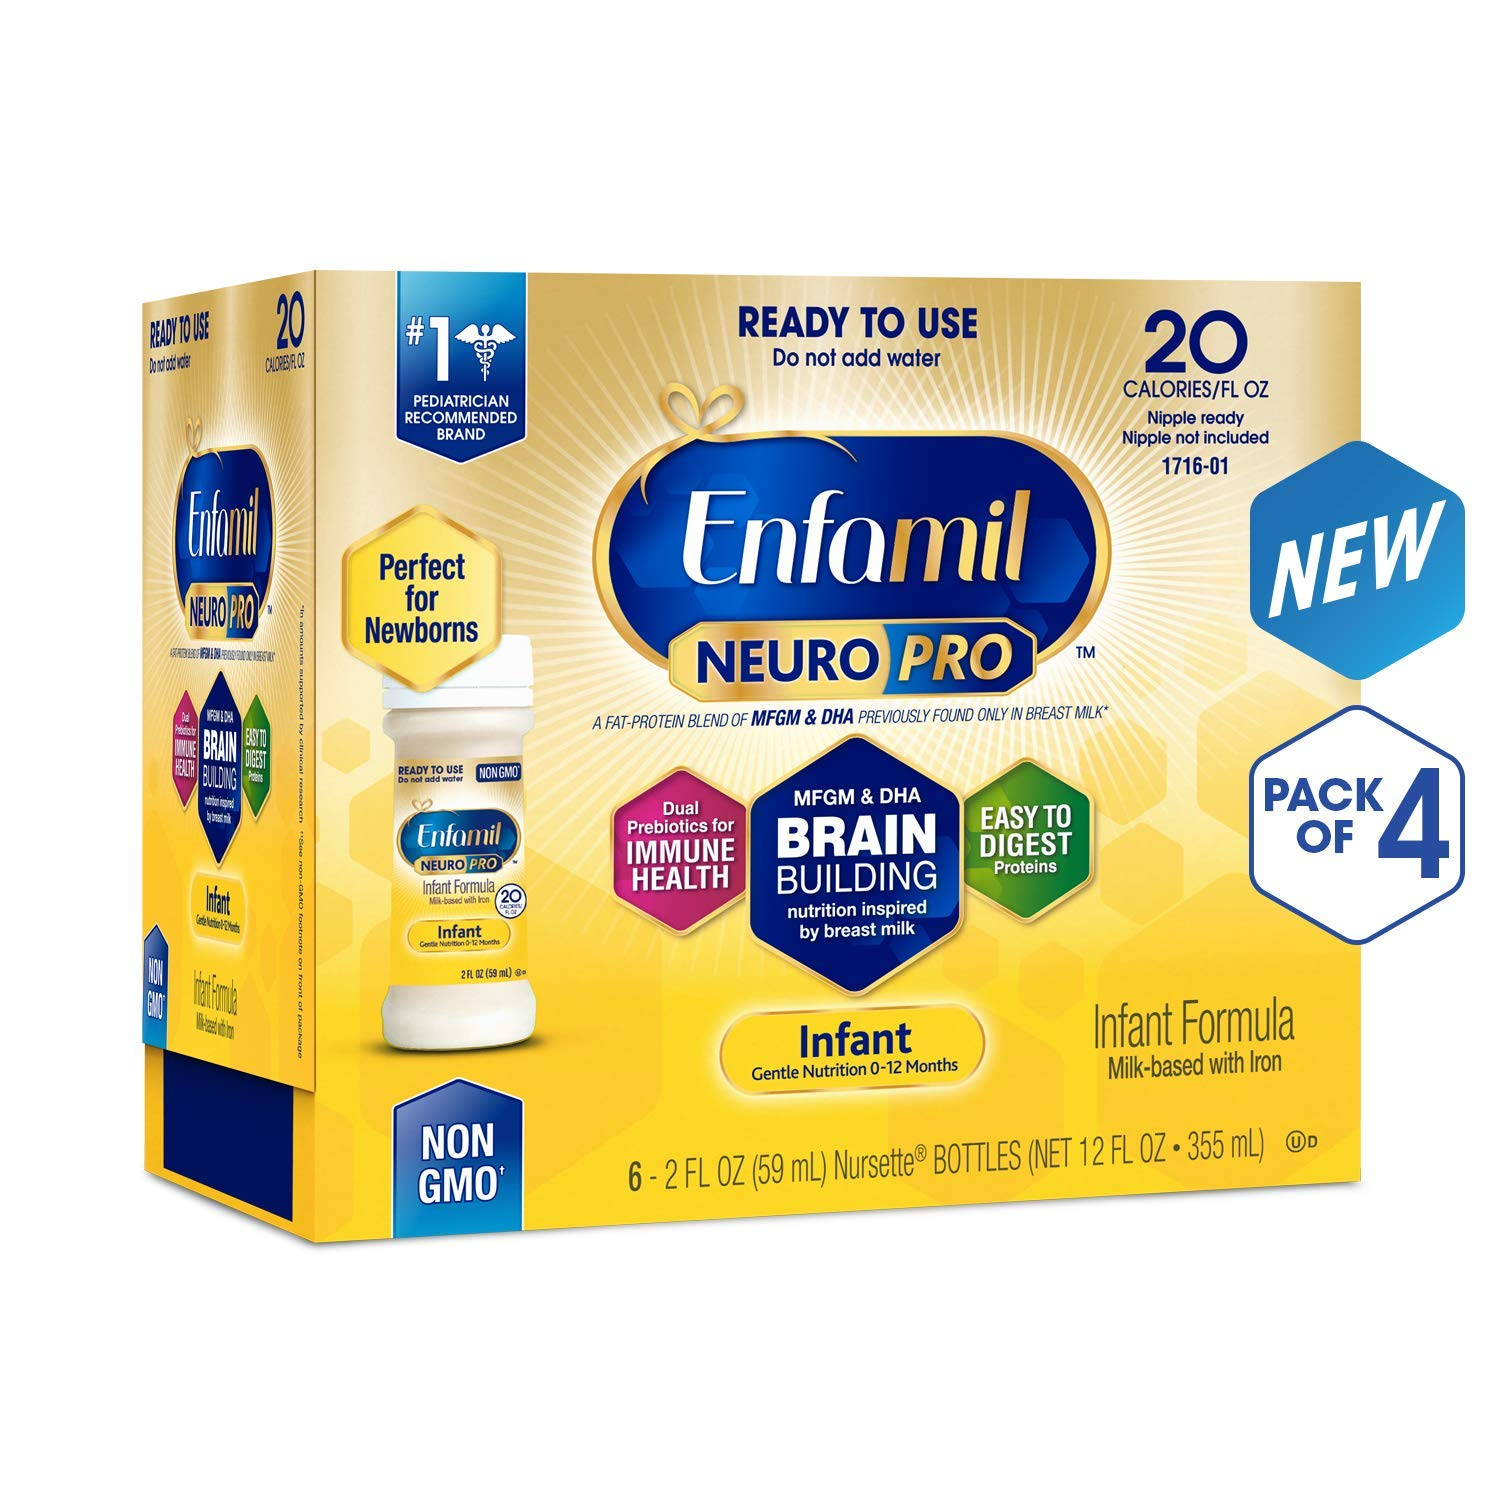 Enfamil NeuroPro Infant Formula - Brain Building Nutrition Inspired by Breast Milk - Ready to Use Liquid, 2 fl oz (24 Count) (4 Pack